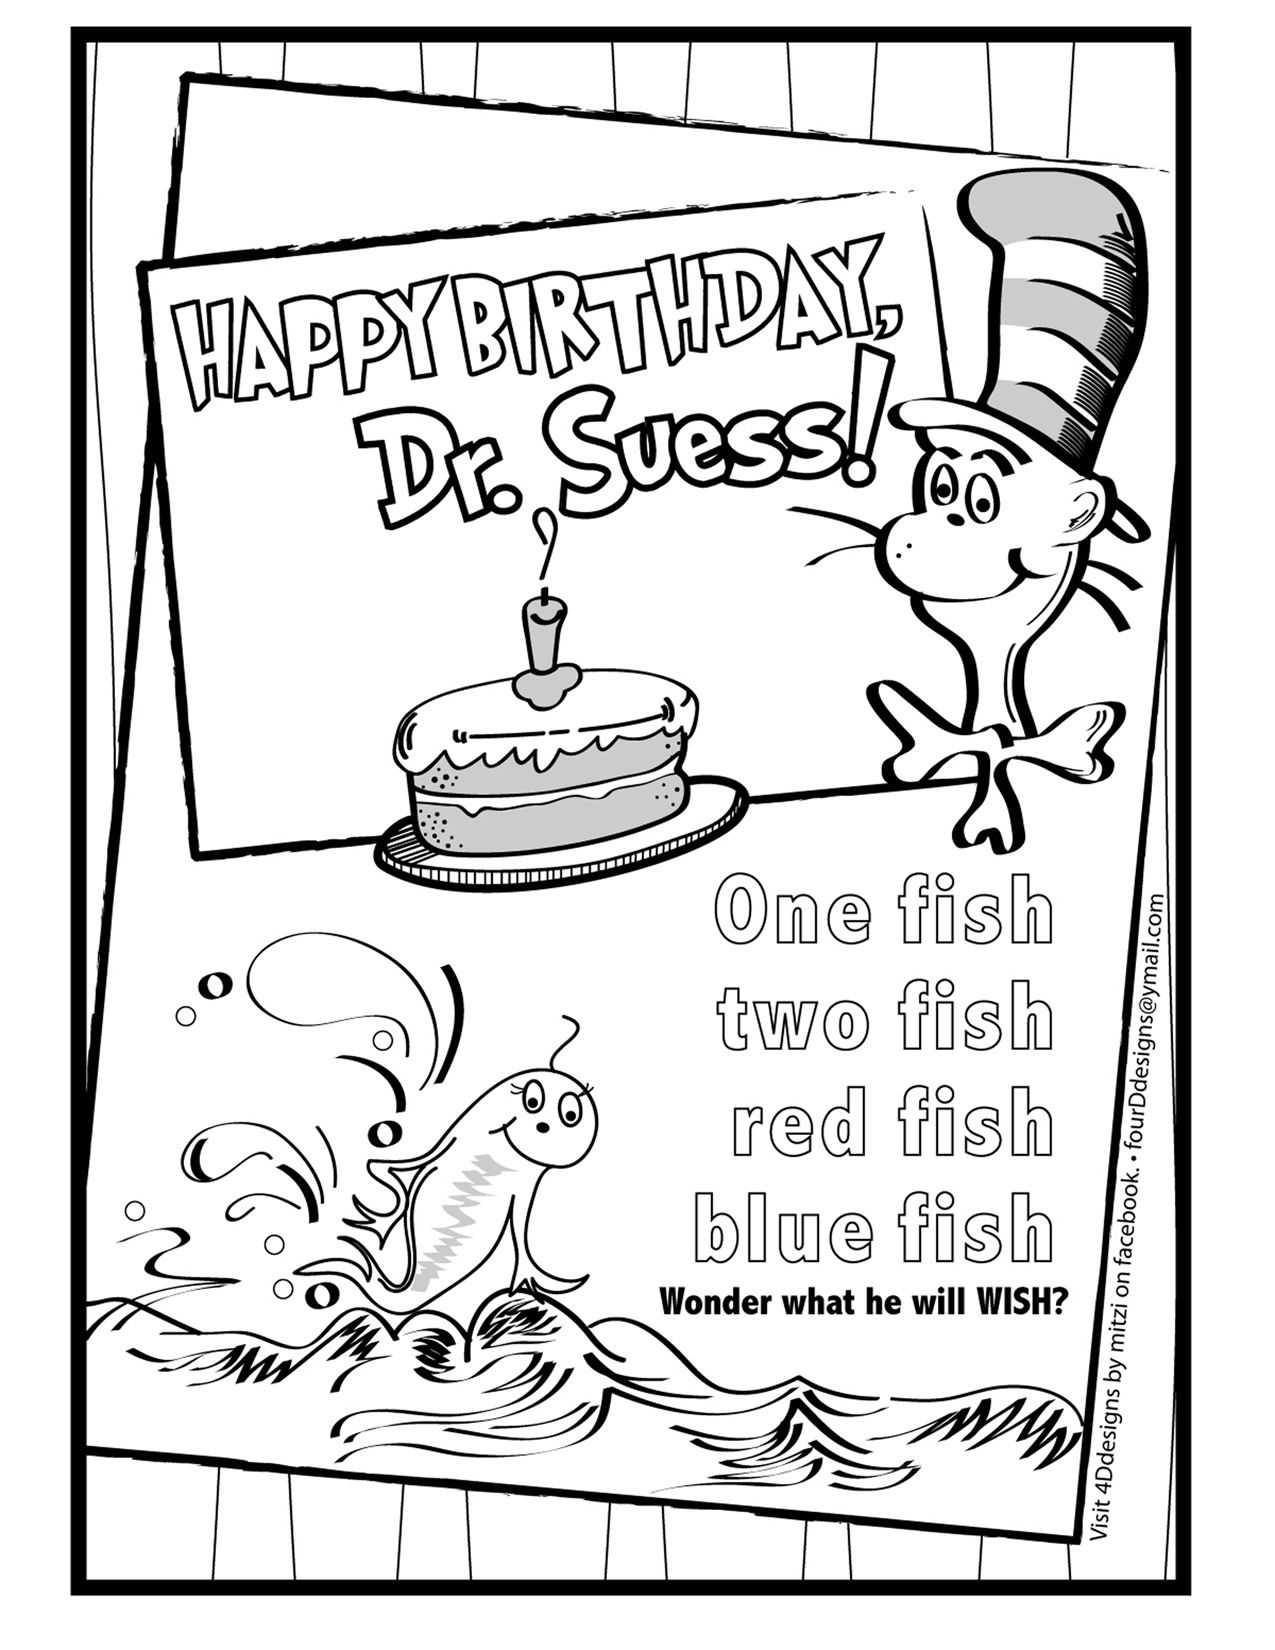 Happy Birthday Dr Suess Coloring Page Free Download Dr Seuss Coloring Pages Happy Birthday Coloring Pages Dr Seuss Coloring Sheet